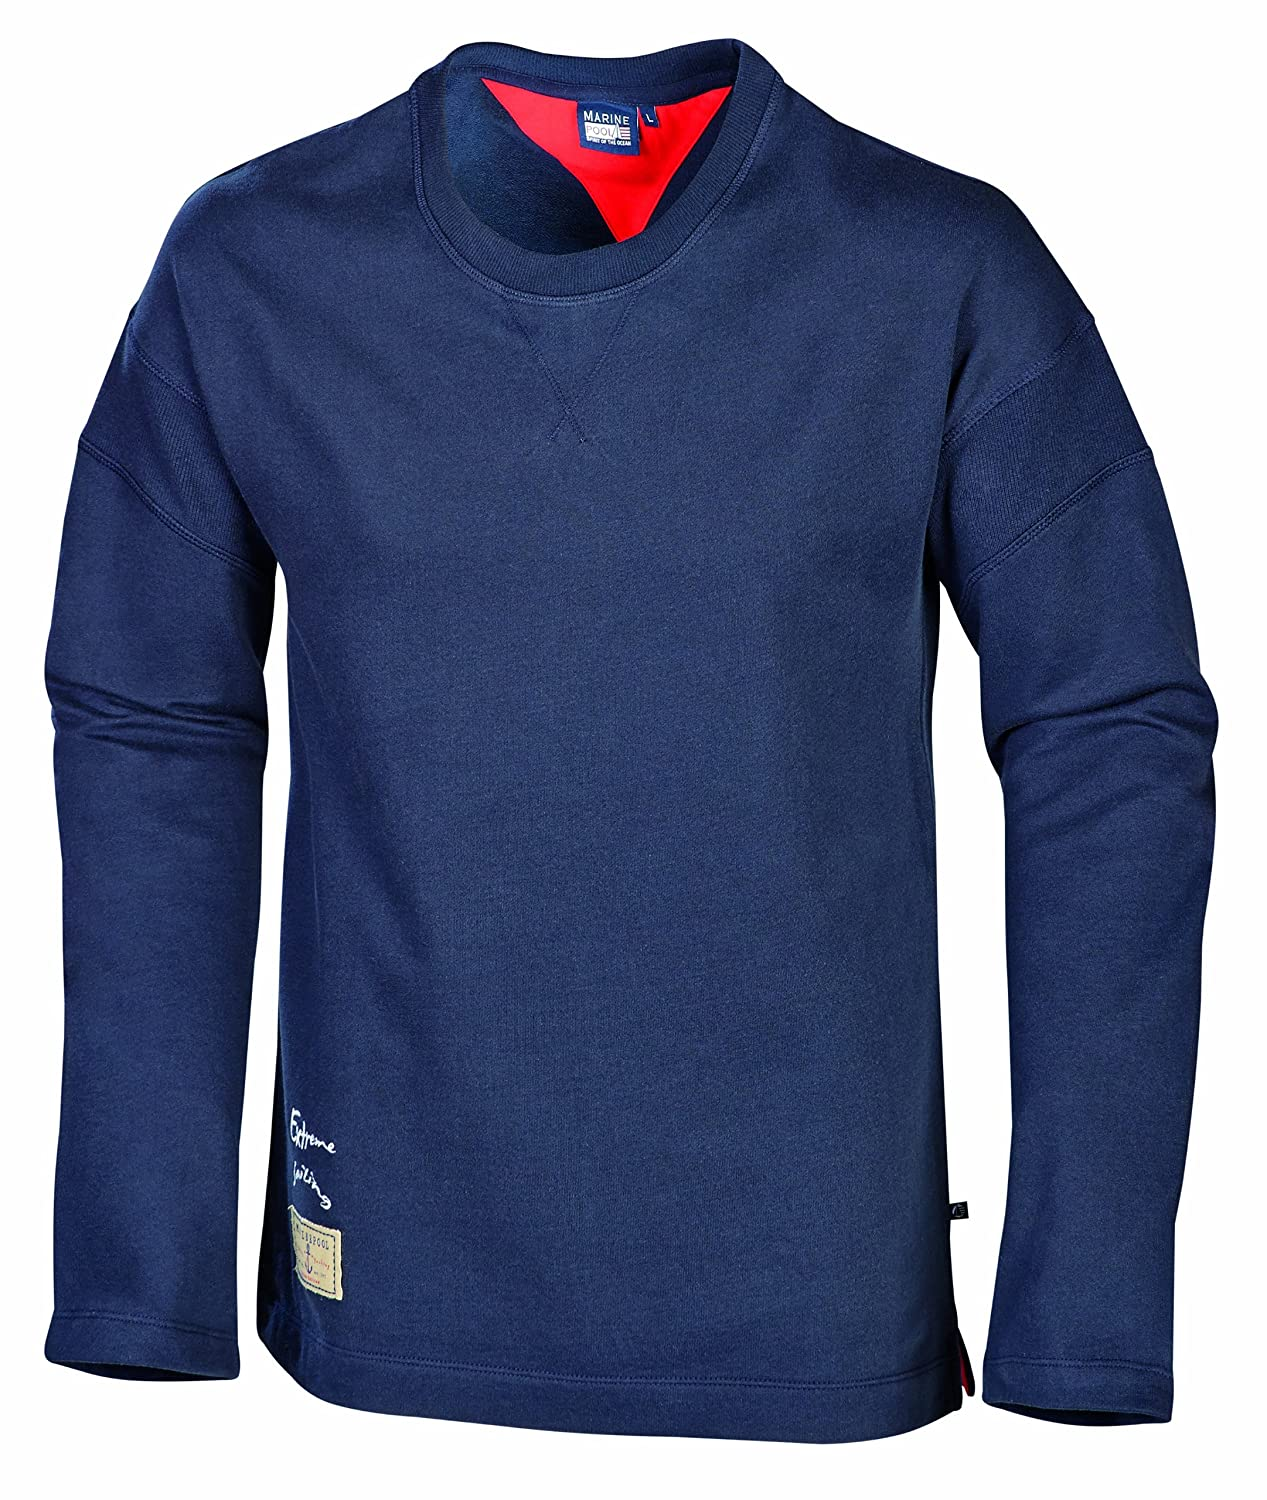 Marinepool Erwachsene Fashion - Men Sweater-Rugger Nilo Sweatshirt